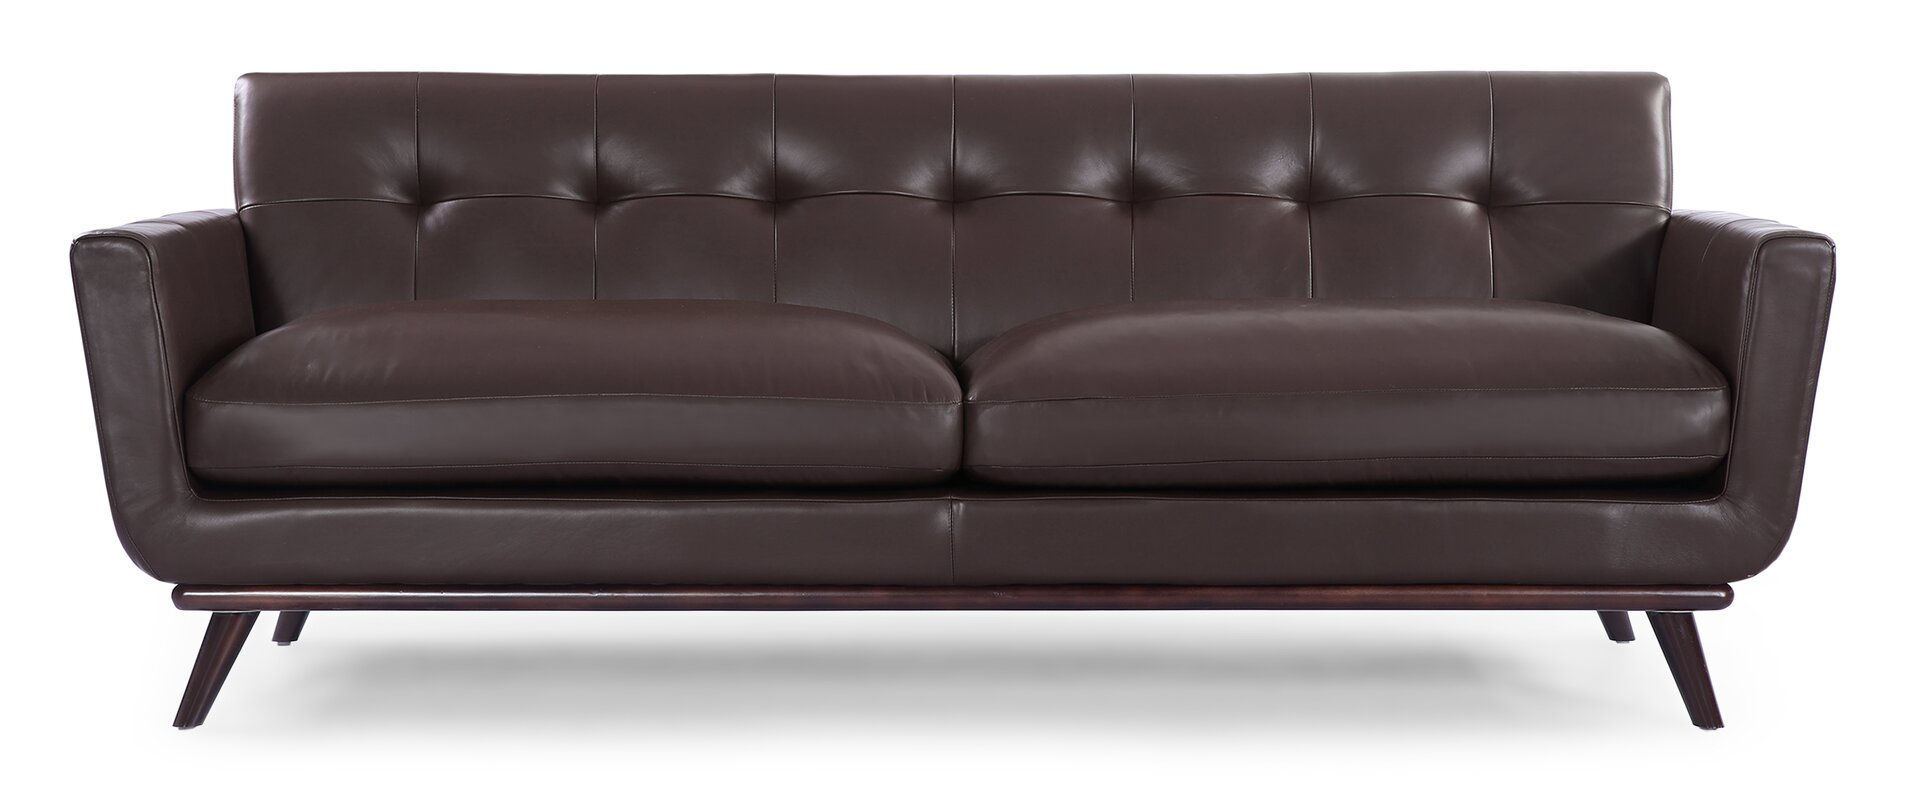 Lovely Luther Mid Century Modern Vintage Leather Sofa